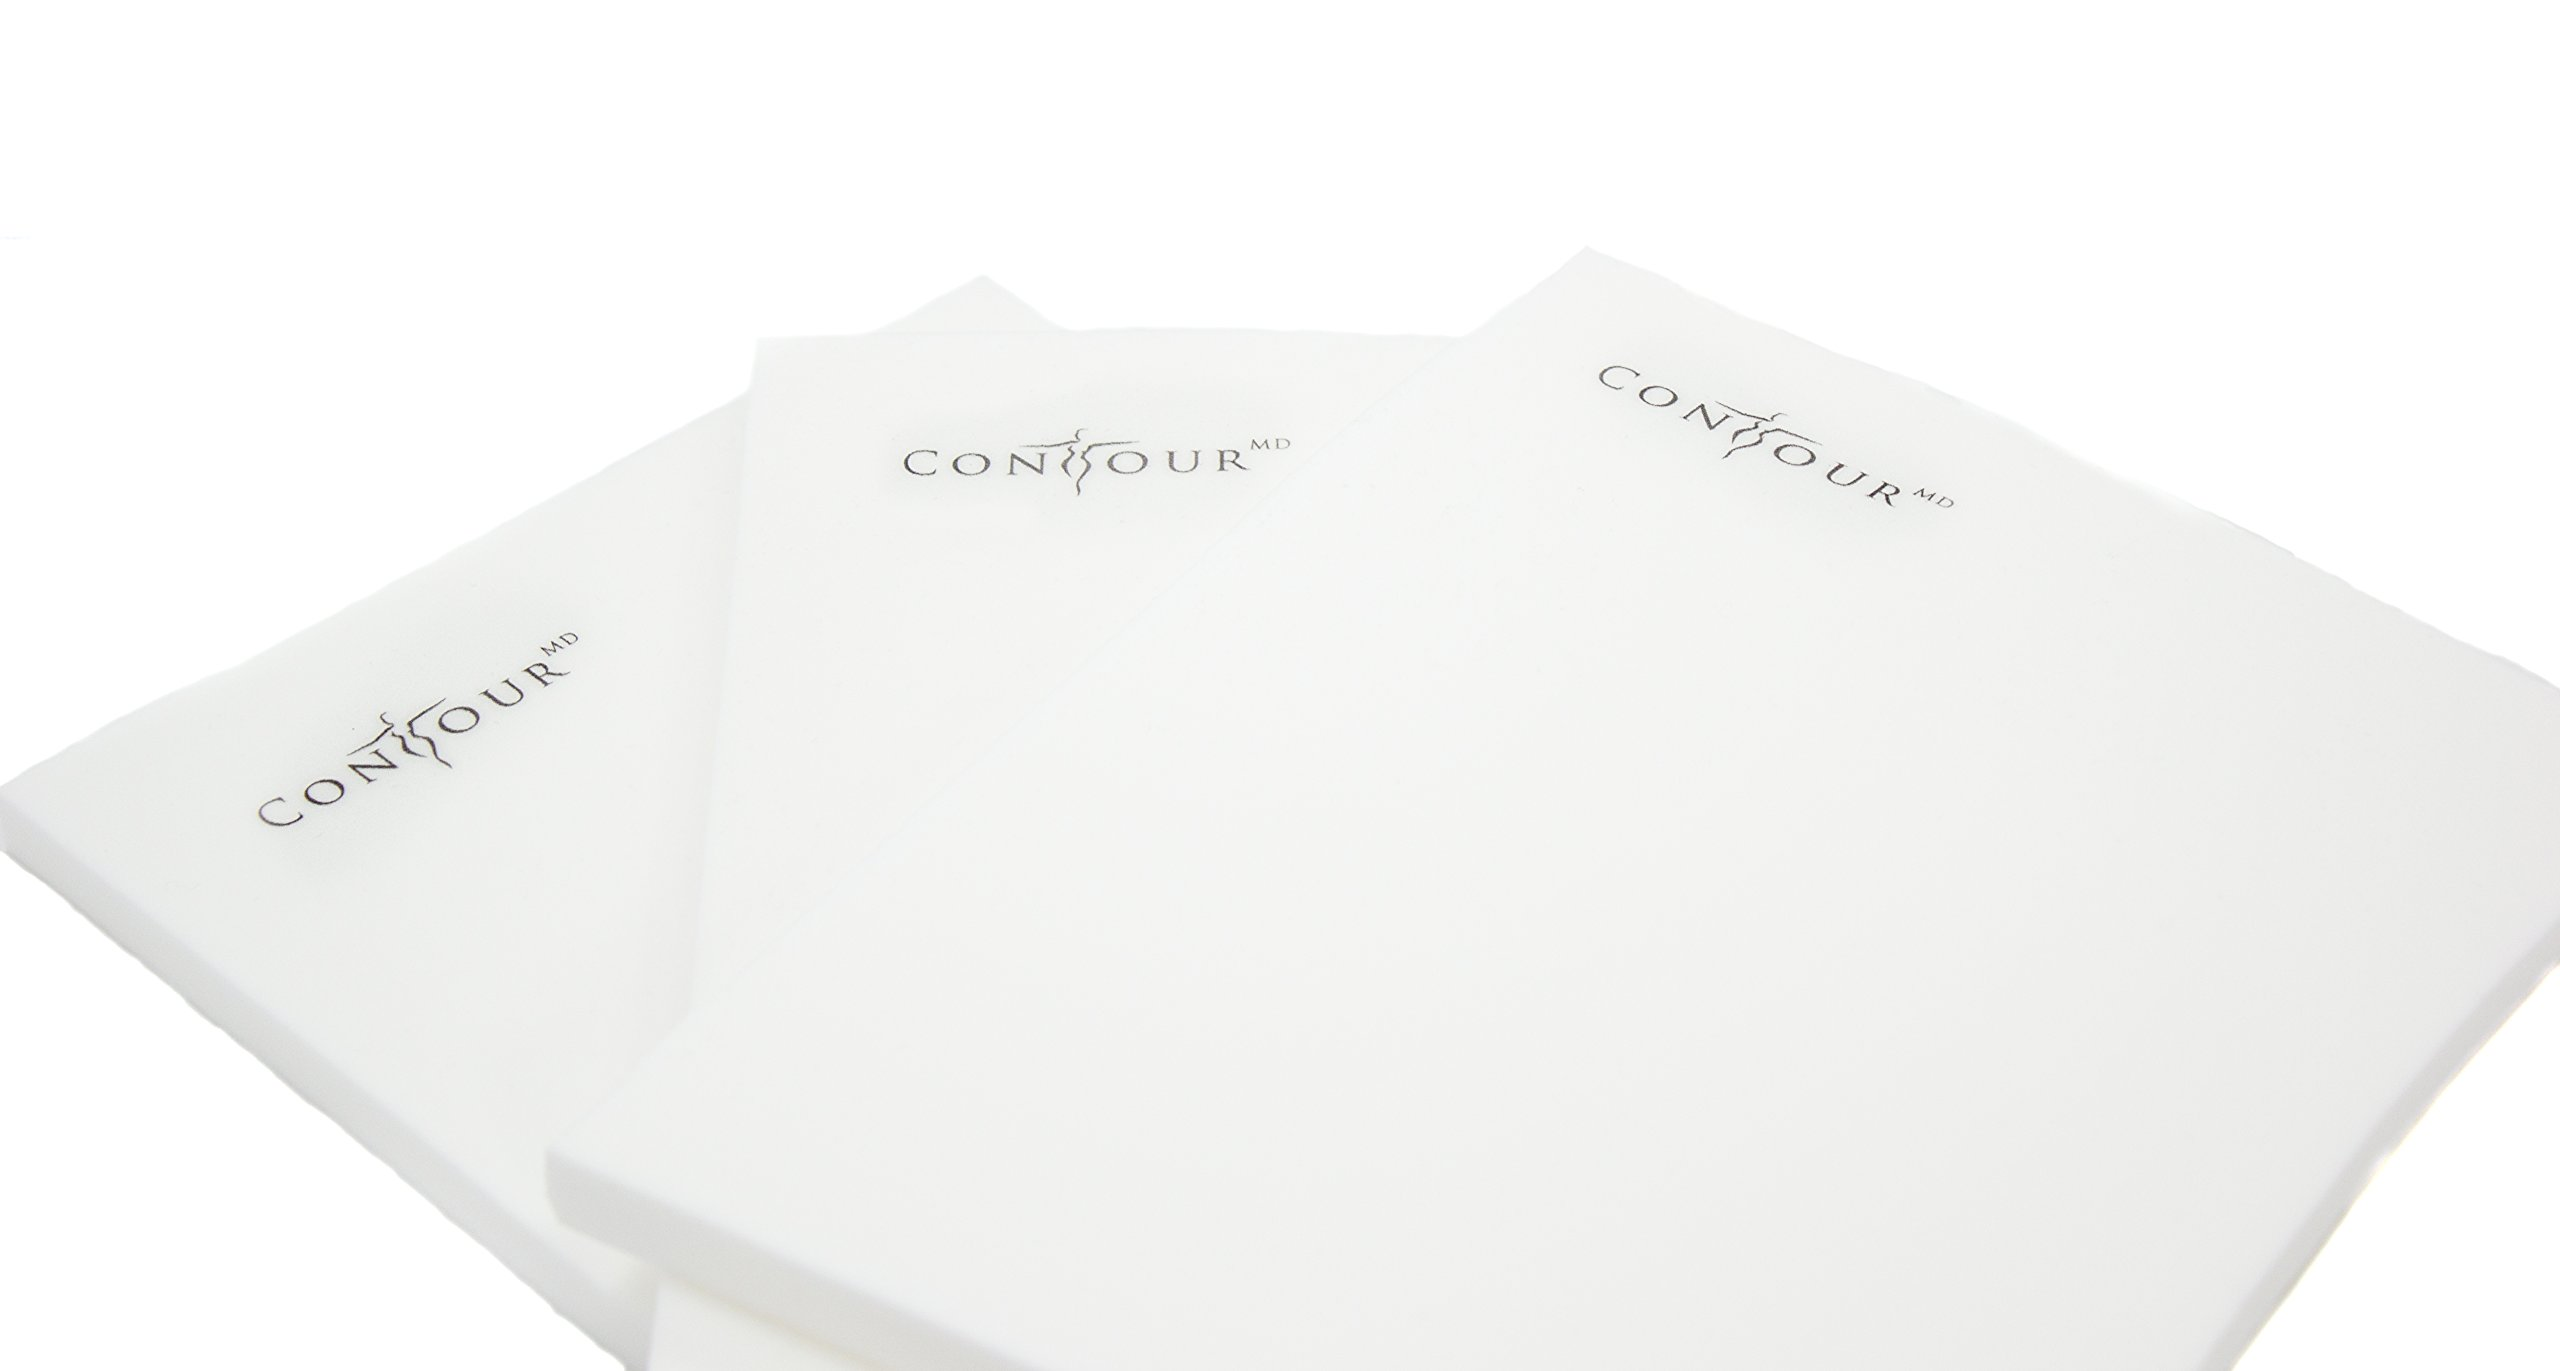 Post Surgery Foam Sheets, Surgical Compression Garments ContourMD, 8''x 11'' Sheet (Lipo-1)